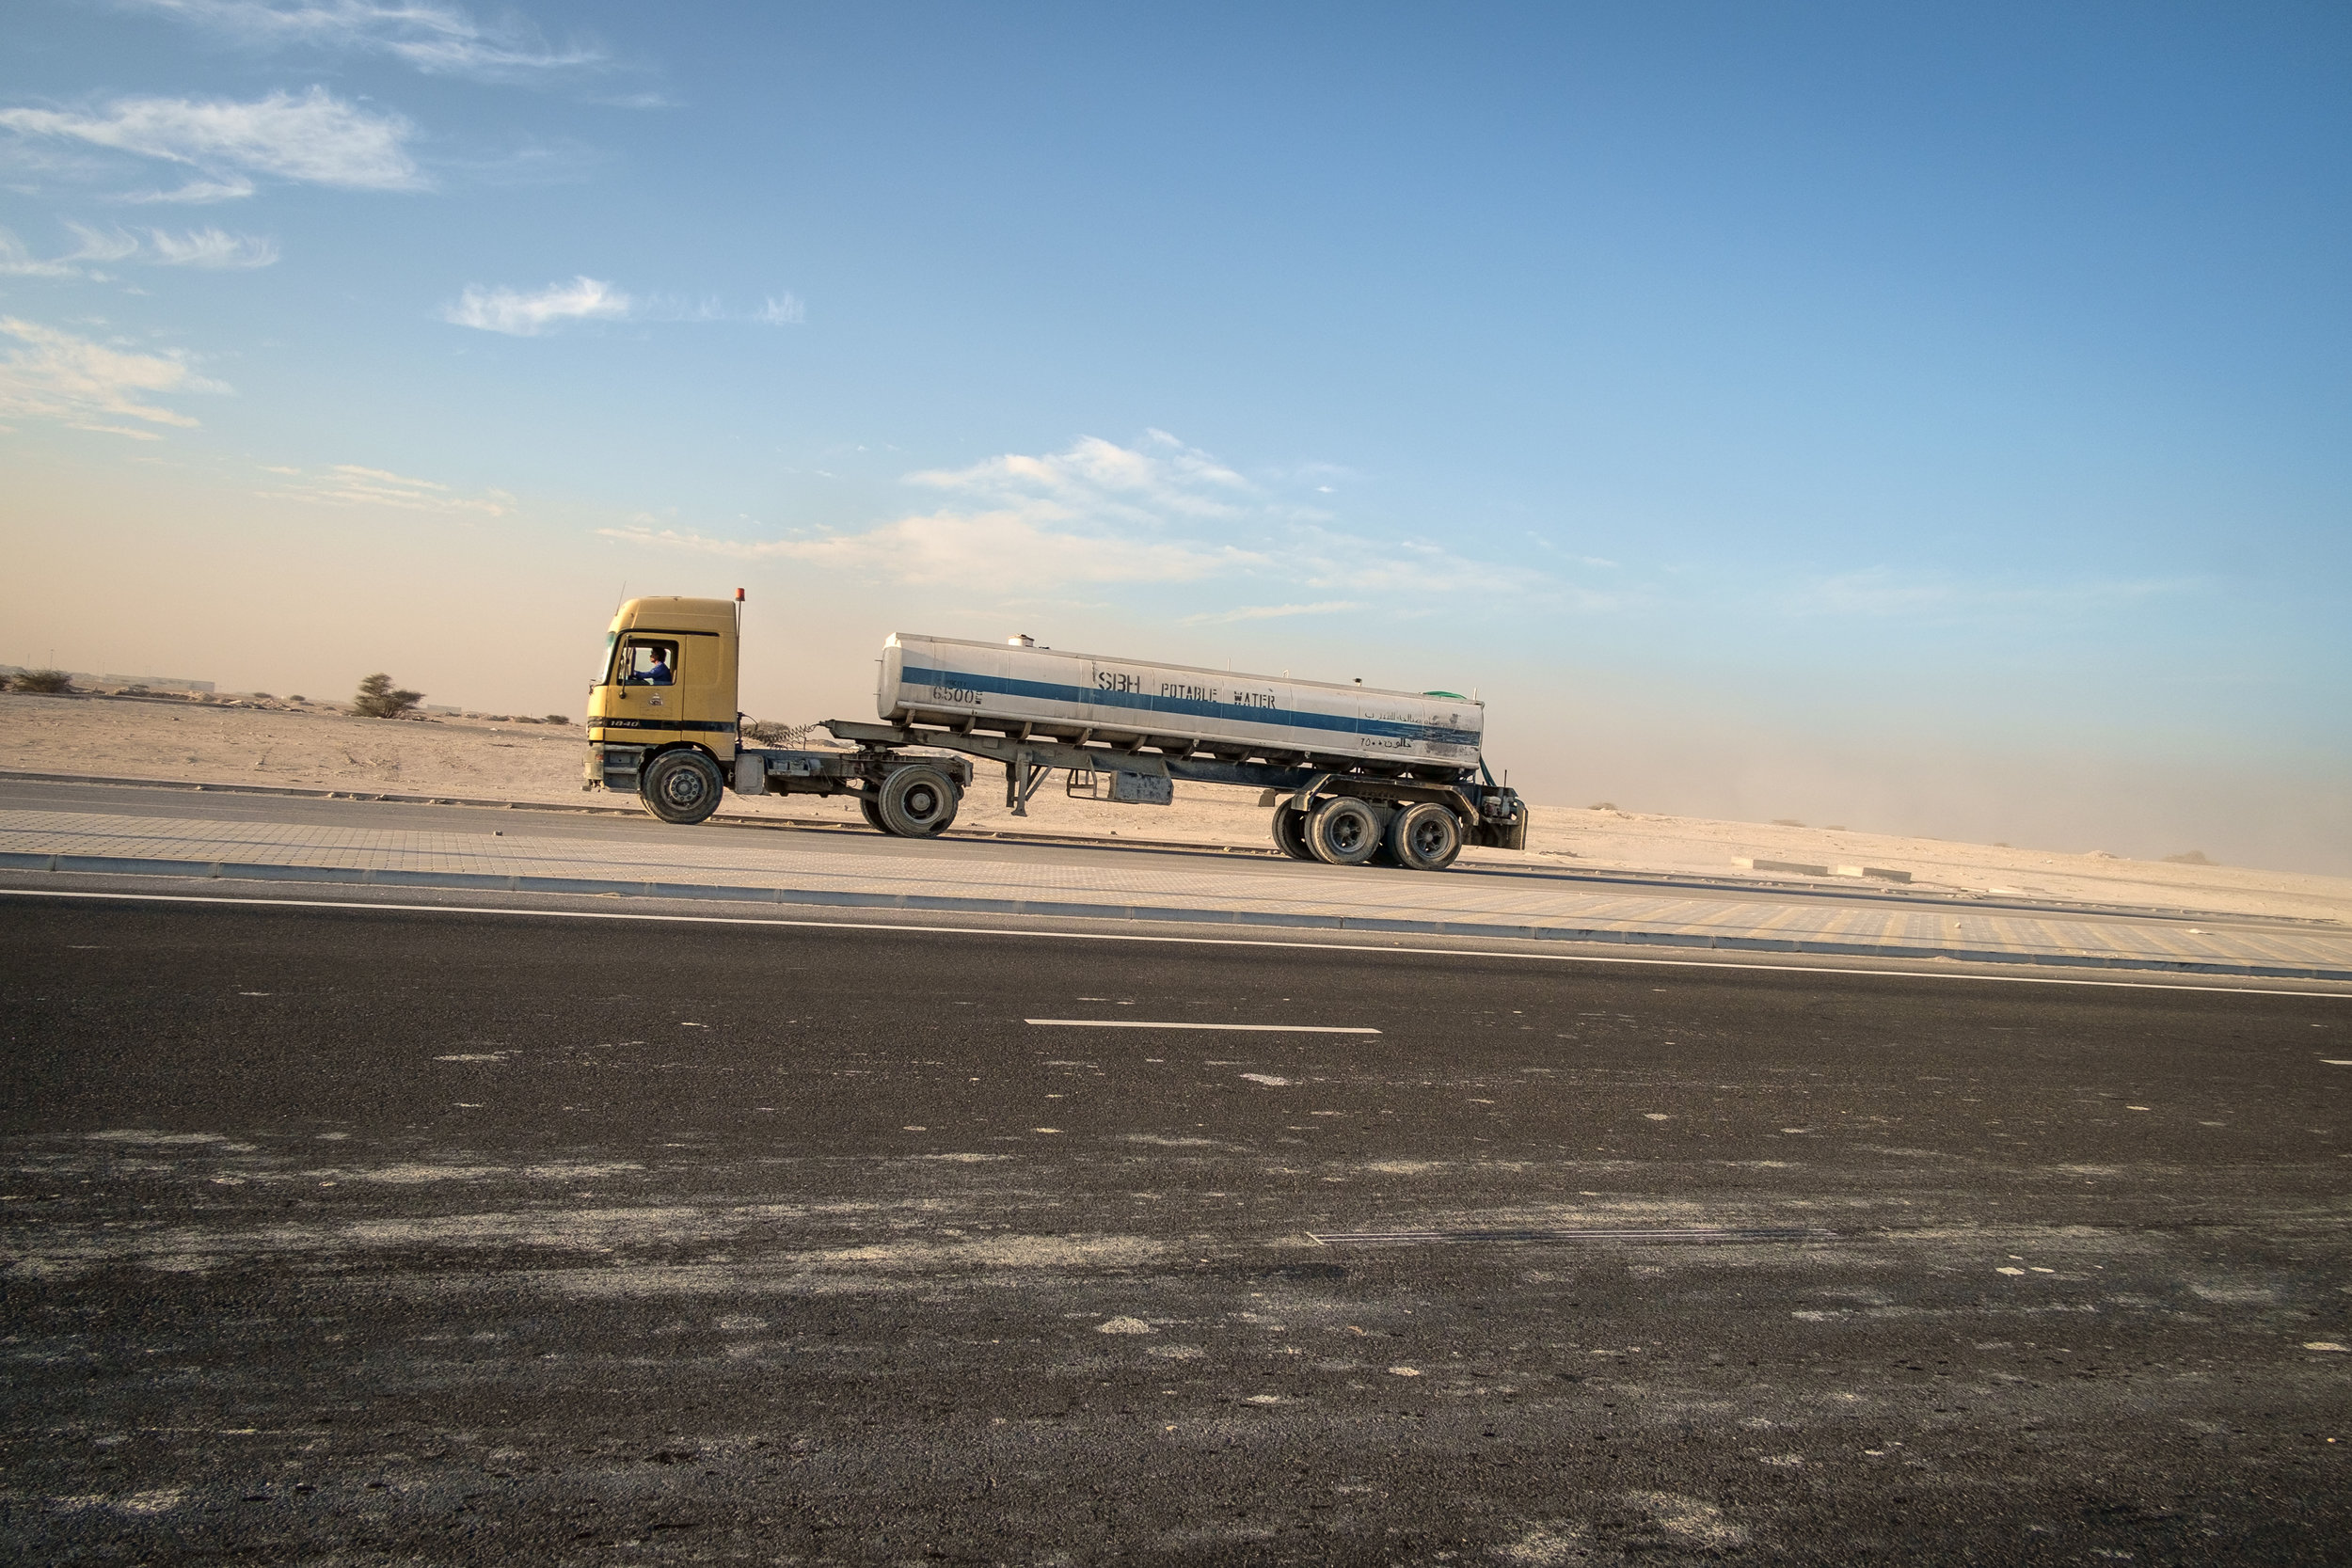 The ubiquitous semi truck, this one carrying water, is seen at sunset leaving massive construction site on the outskirts of Doha.